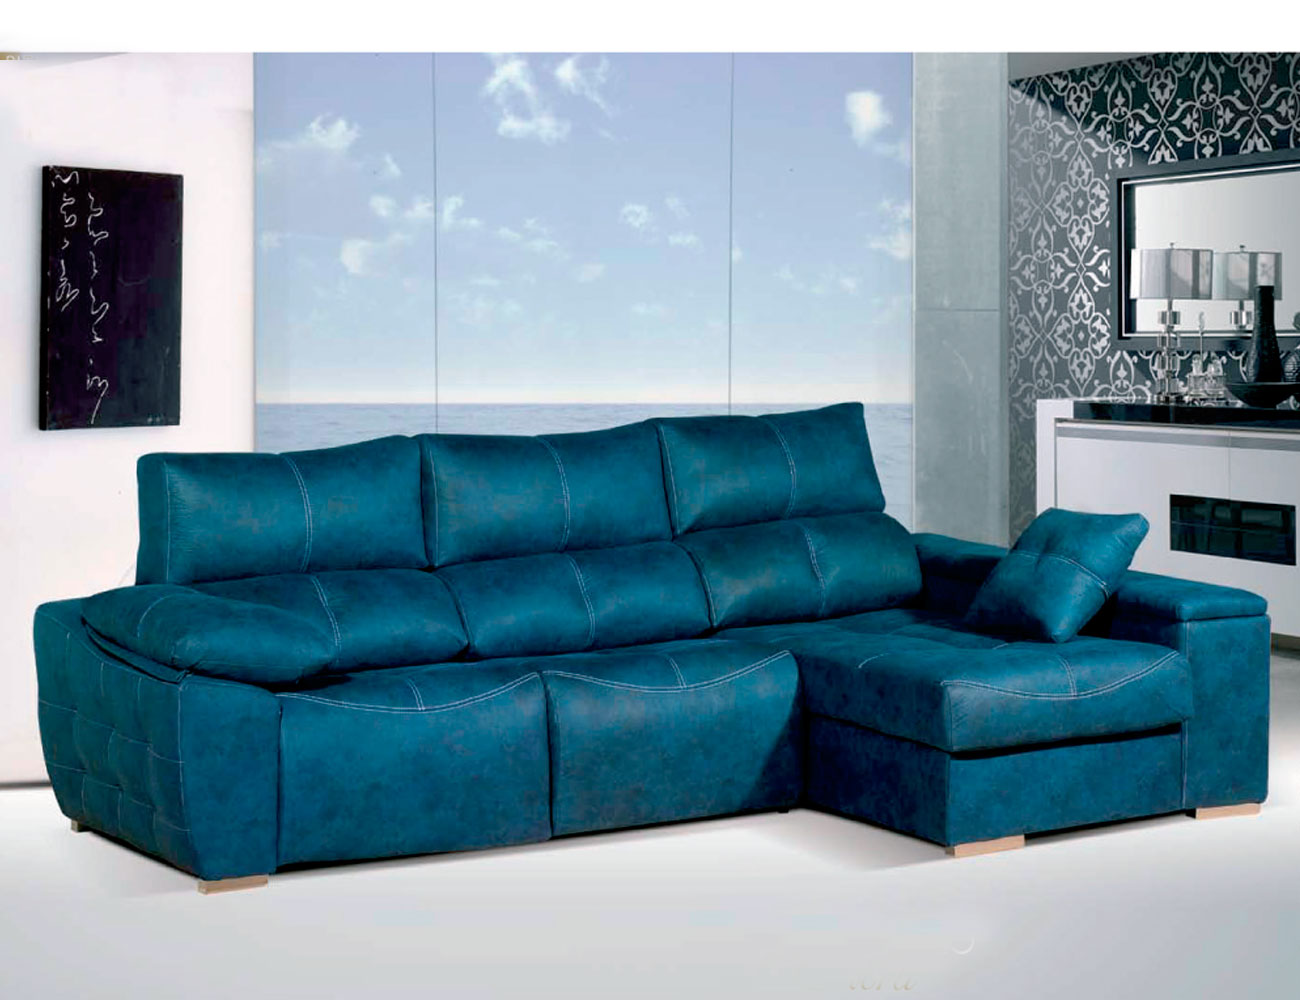 Sofa chaiselongue relax 2 motores anti manchas turquesa6